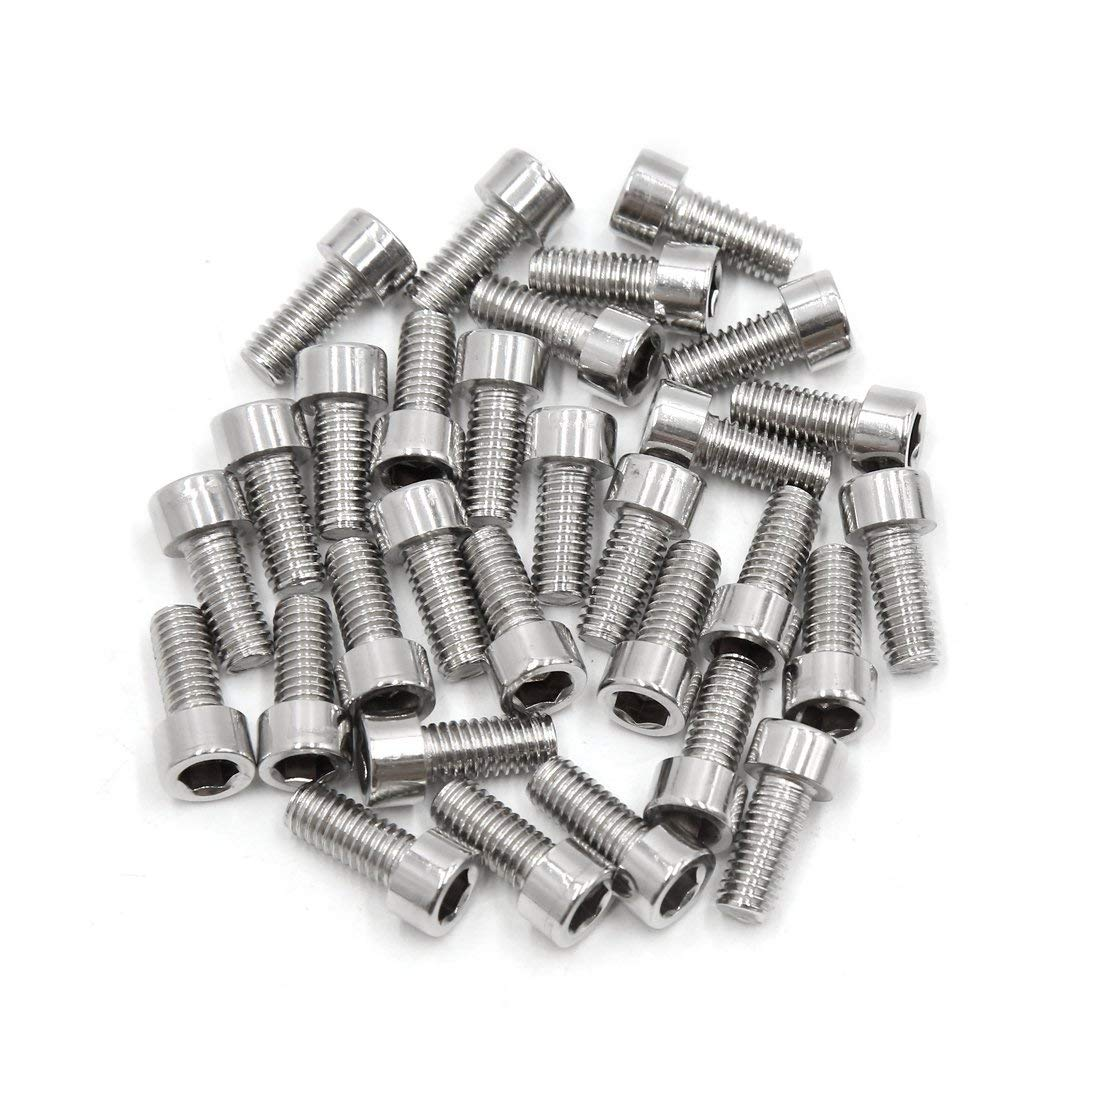 uxcell 30pcs Silver Tone Stainless Steel Motorcycle Hexagon Bolts Hex Screws M6 x 14